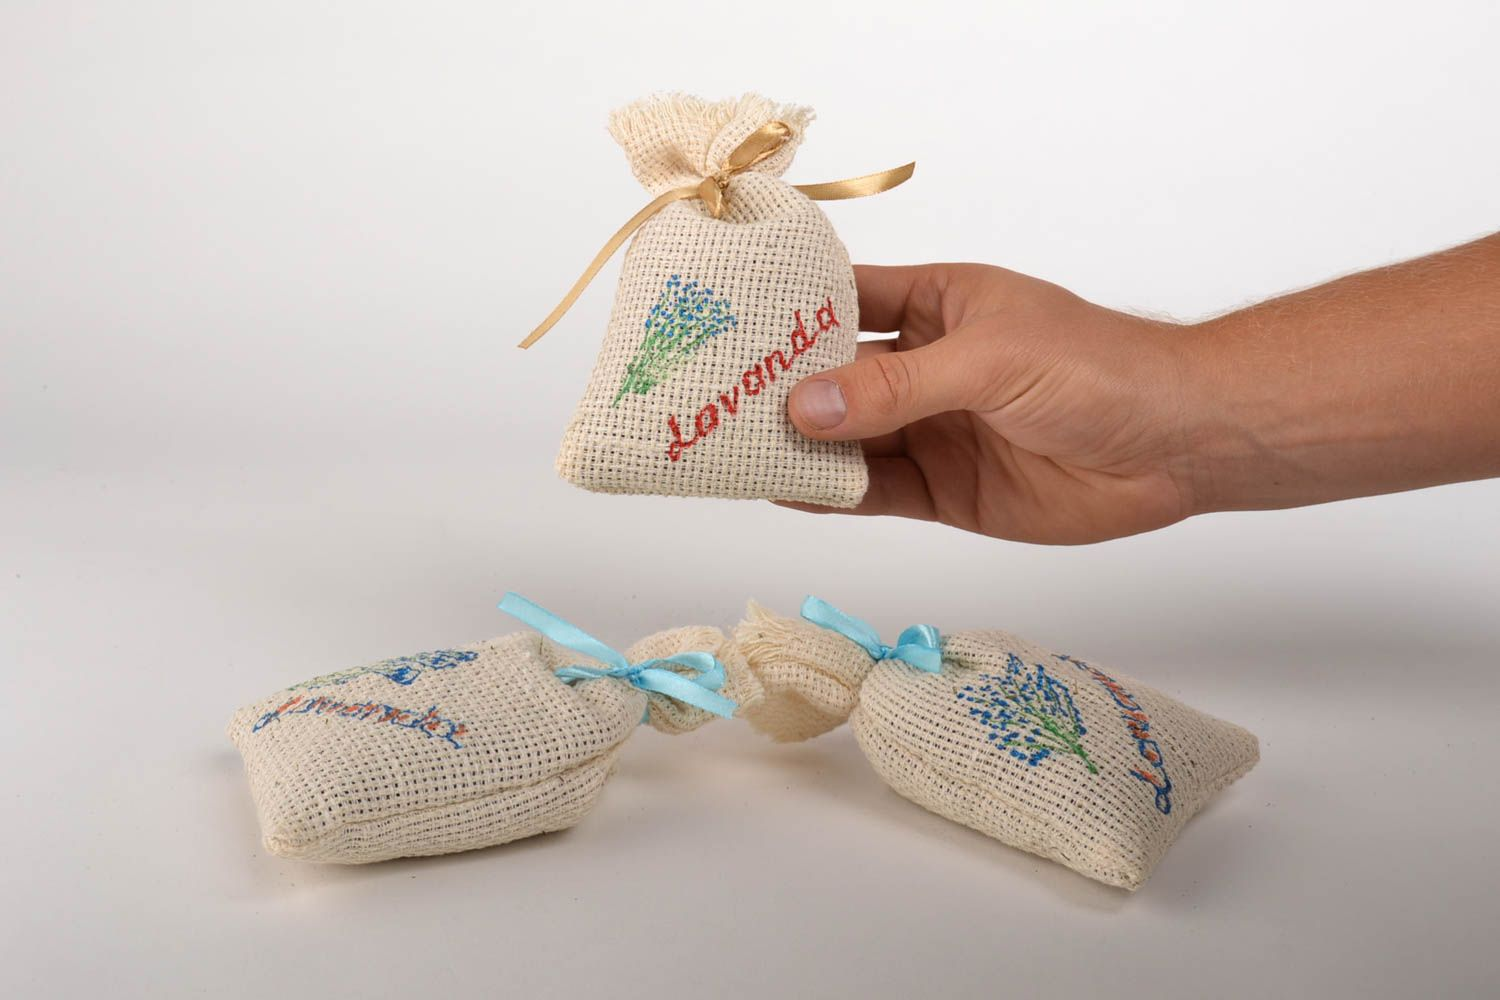 Handmade decorative sachet bag scented sachet bags 3 pieces small gifts photo 5